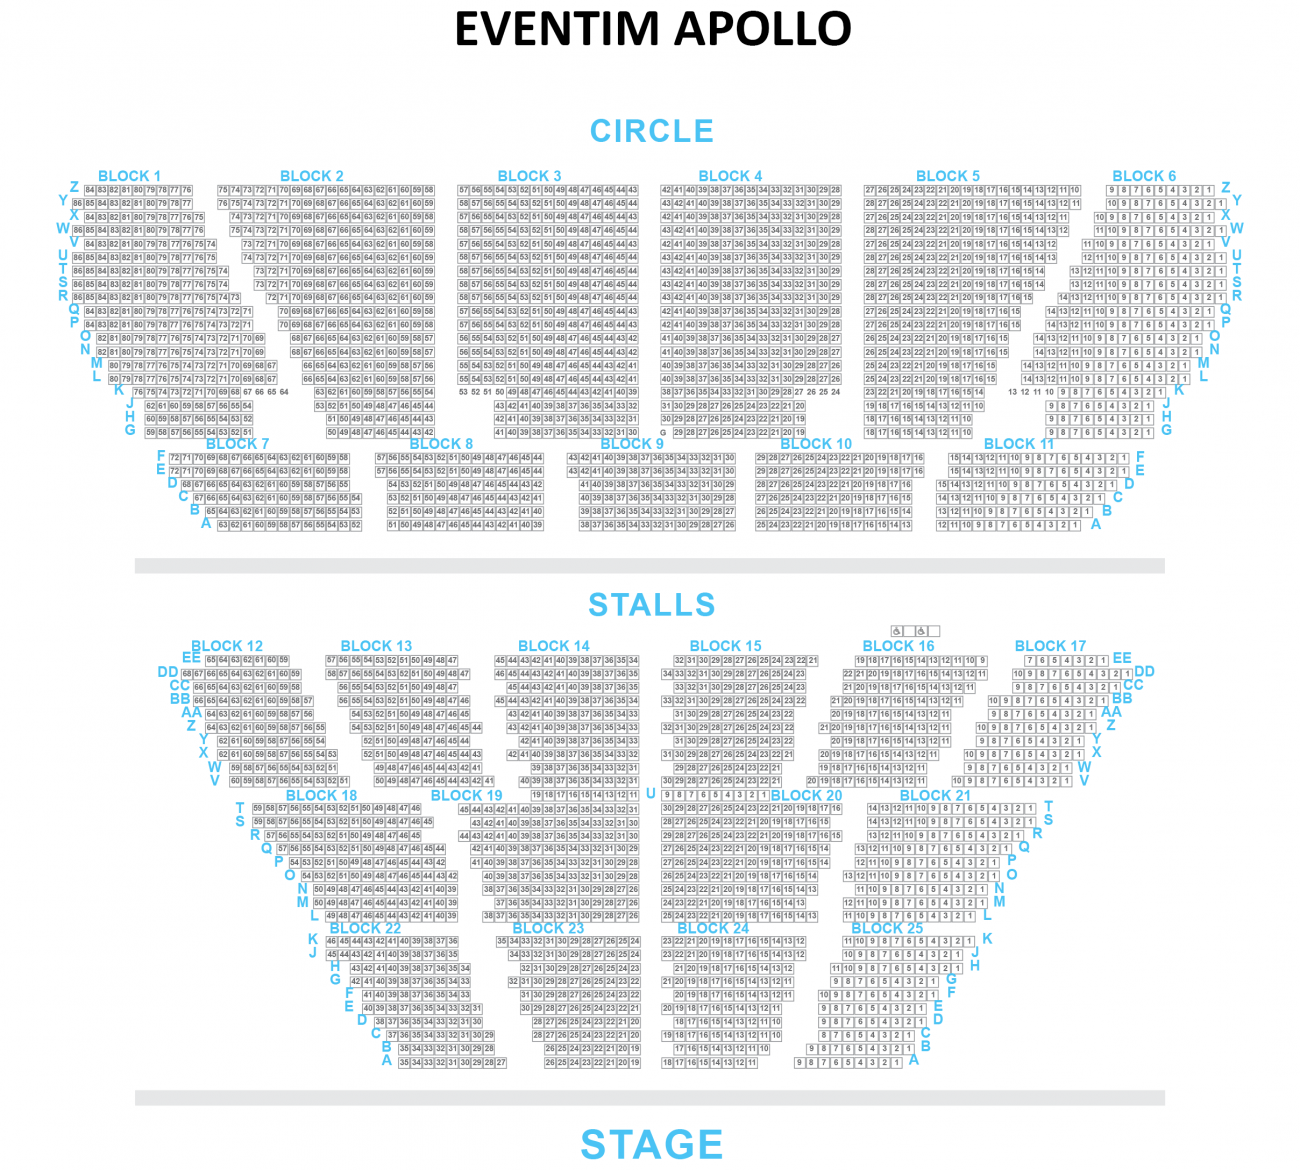 Hammersmith Apollo (Eventim)